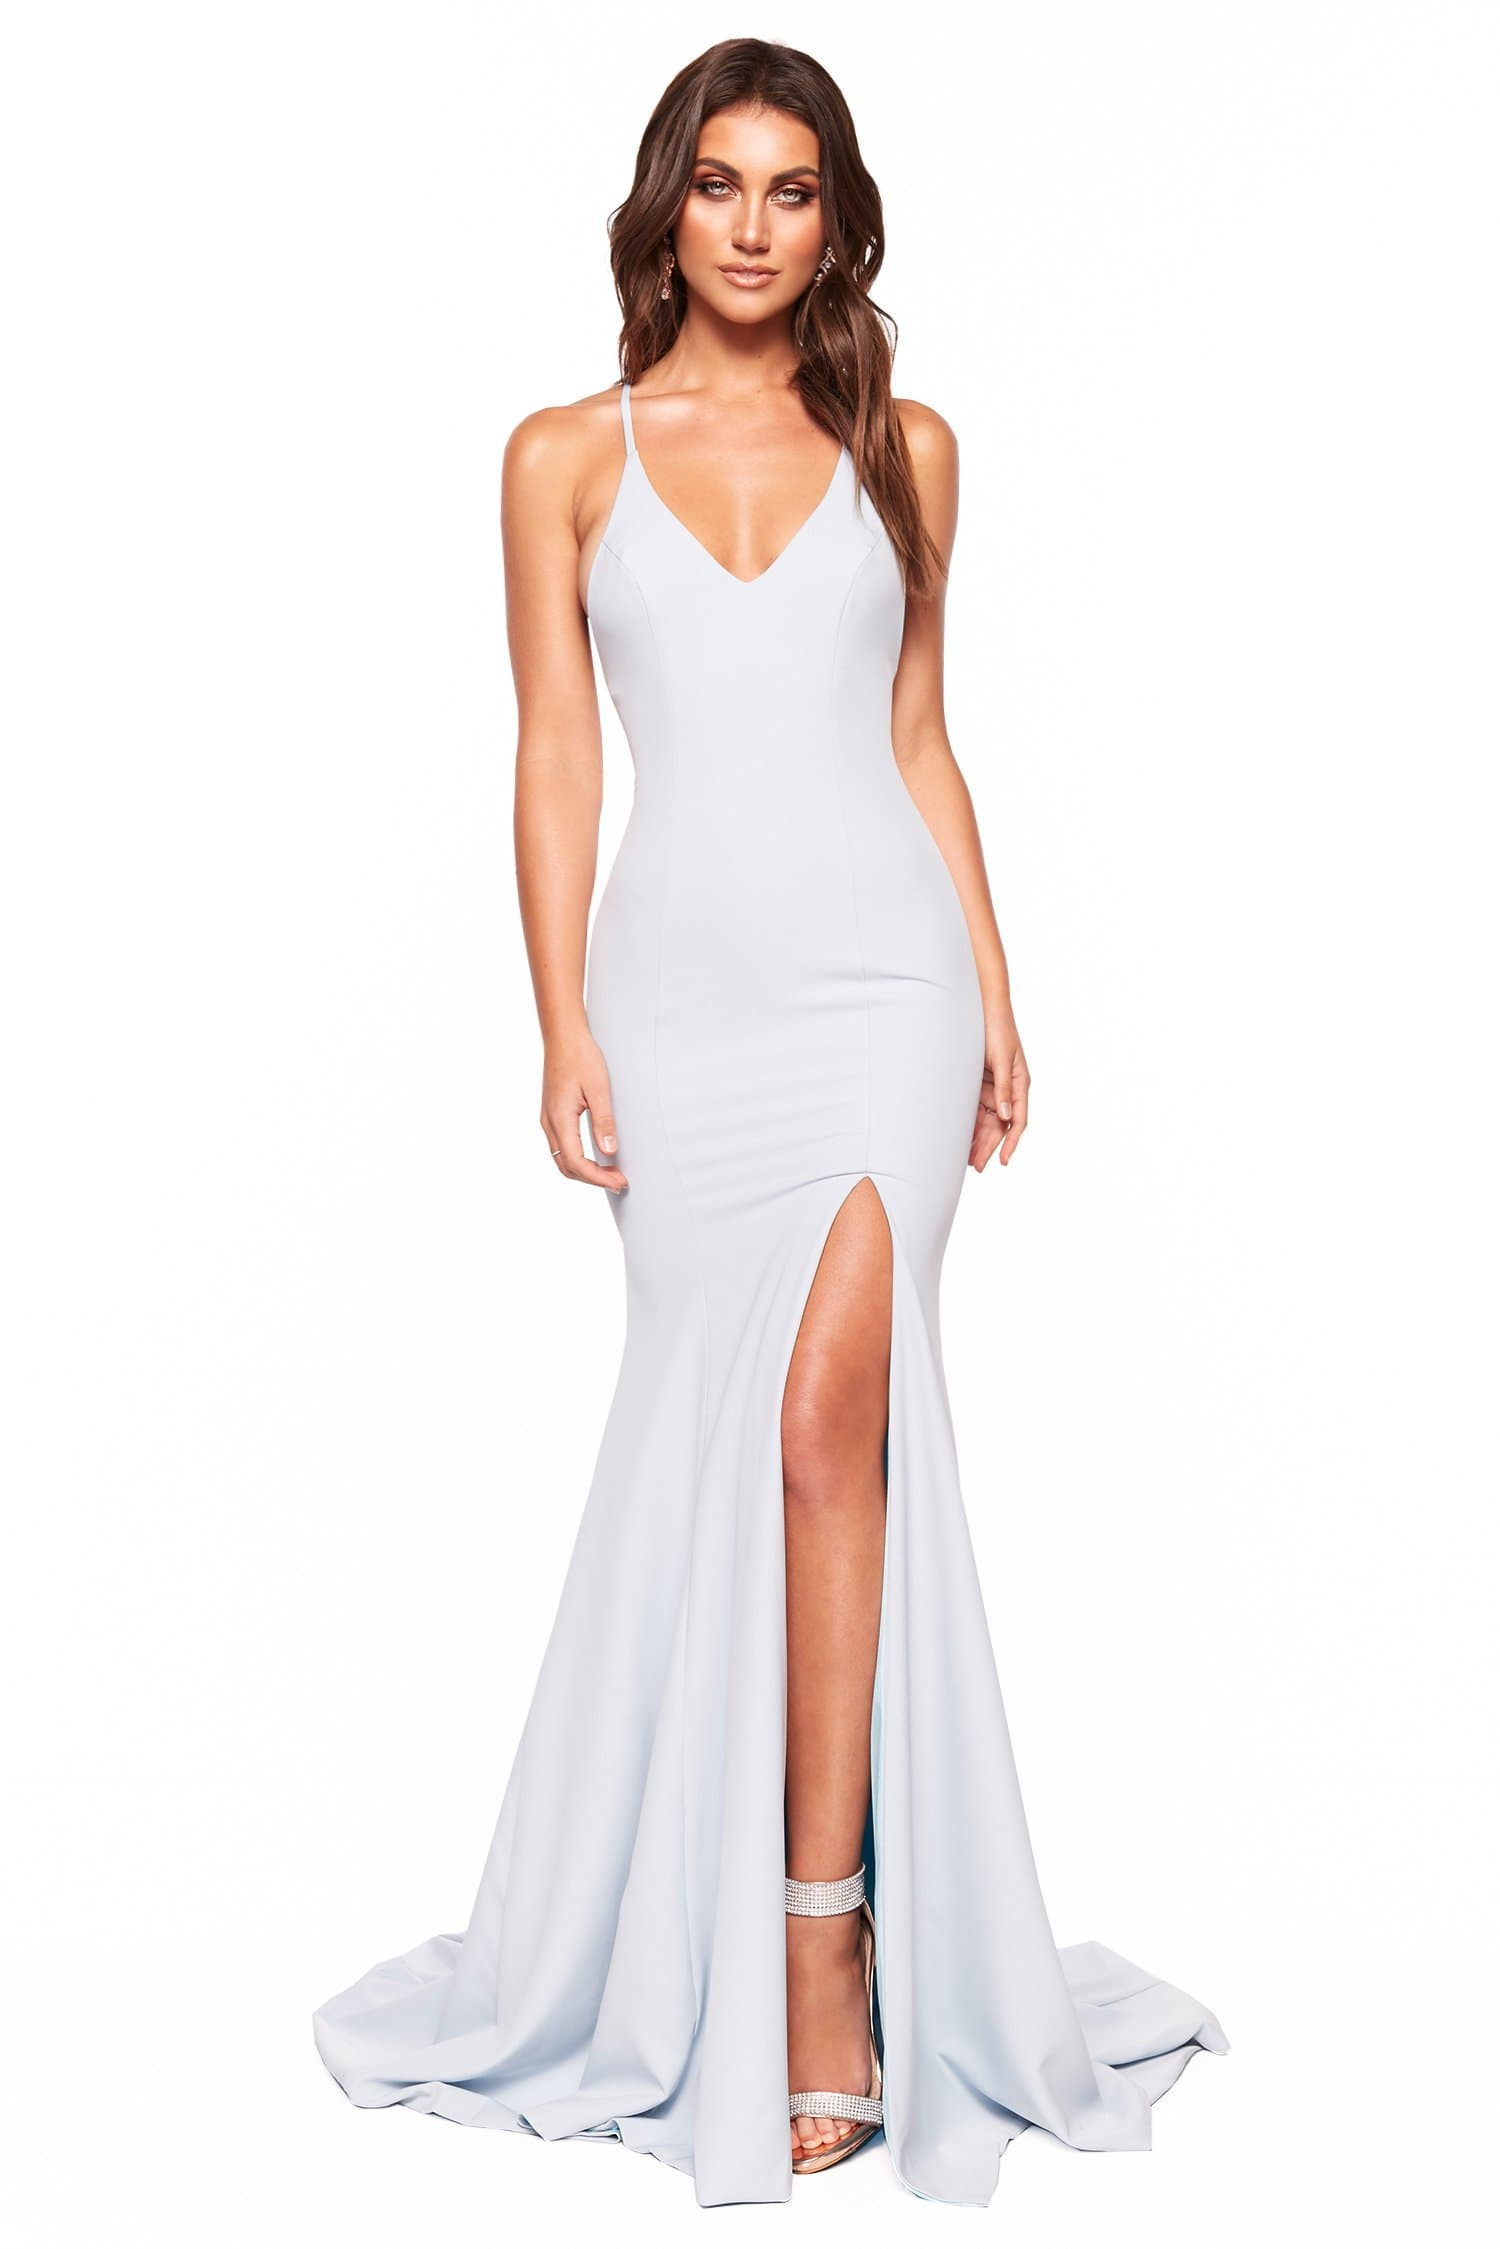 A&N Luxe Emilie - Sky Blue Gown with V-Neck, Lace-Up Back & Slit